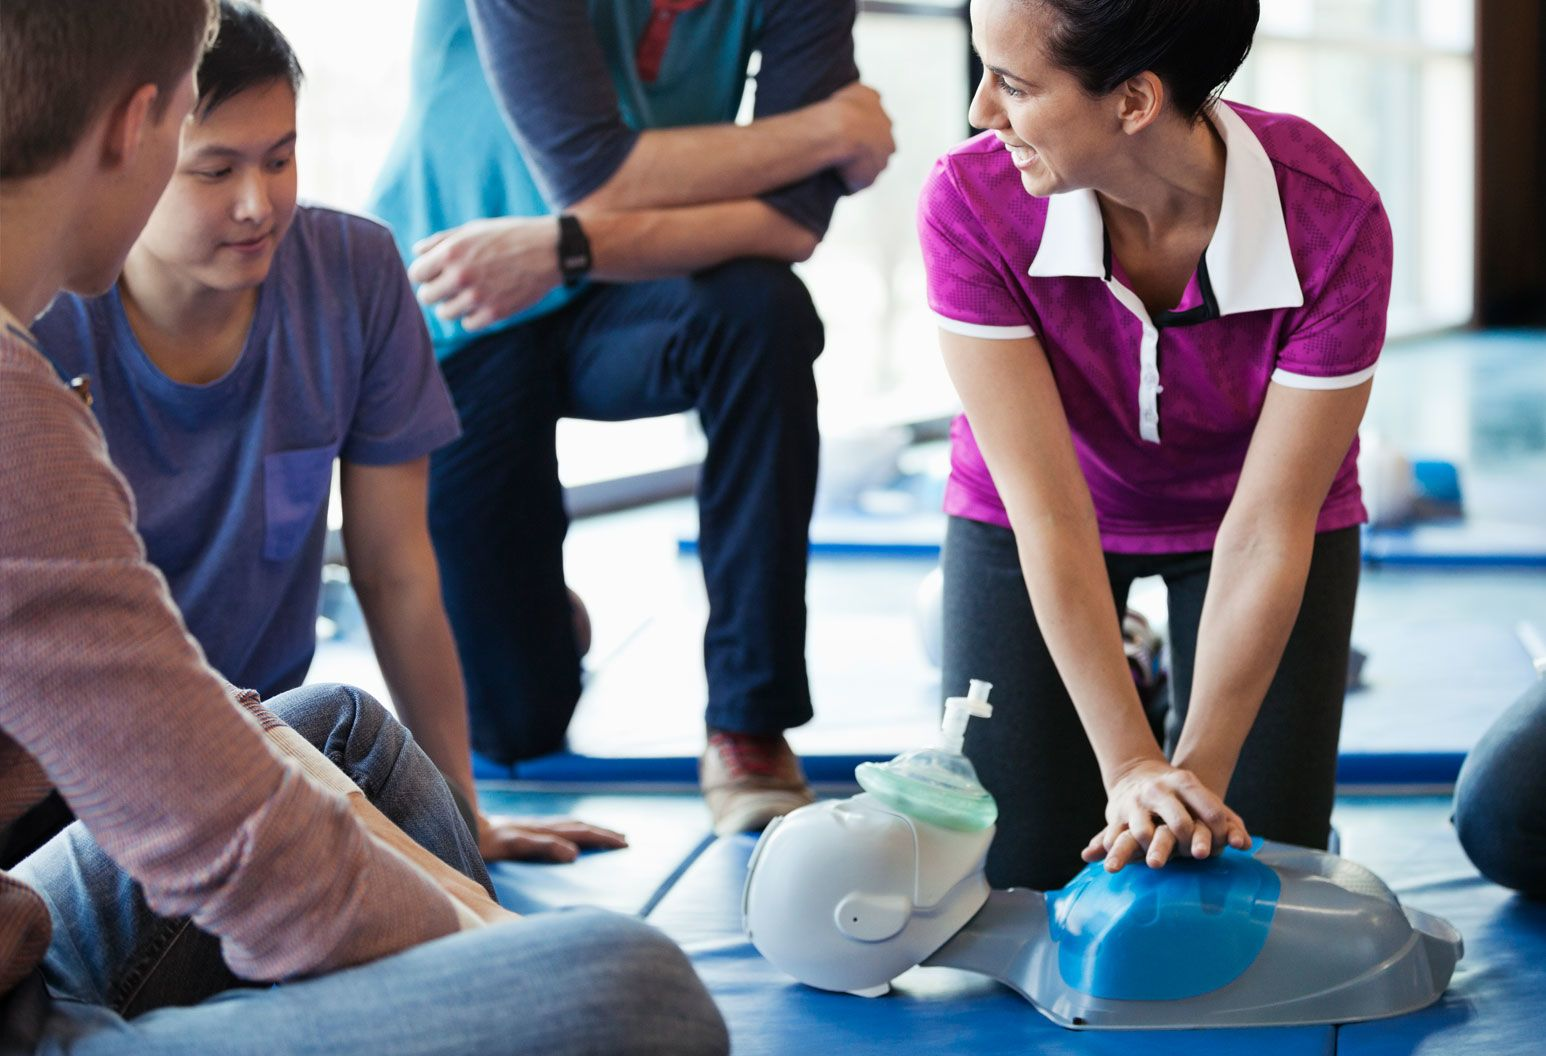 A CPR training, a female student is practicing on a dummy while looking at her classmate for encouragement.